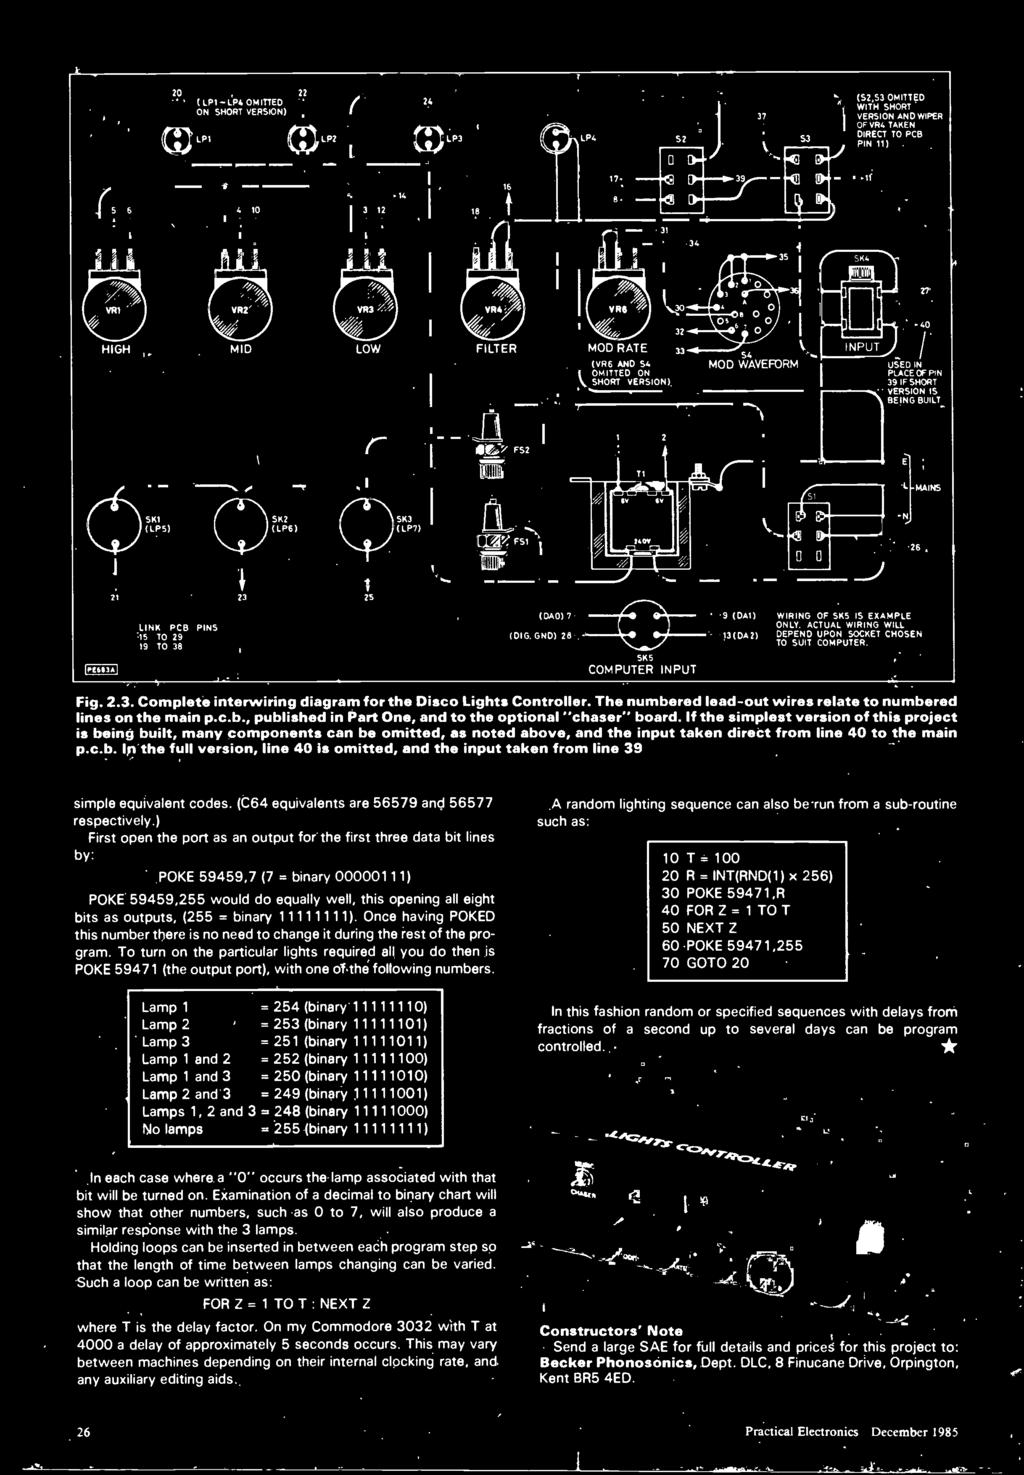 Robotics Review Industry Notebook Bazaar Pdf 1992 Ford F259 7 3 Fuse Diagram Short Version 32 33 S4 Mod Waveform 40 Input Used In Place Of